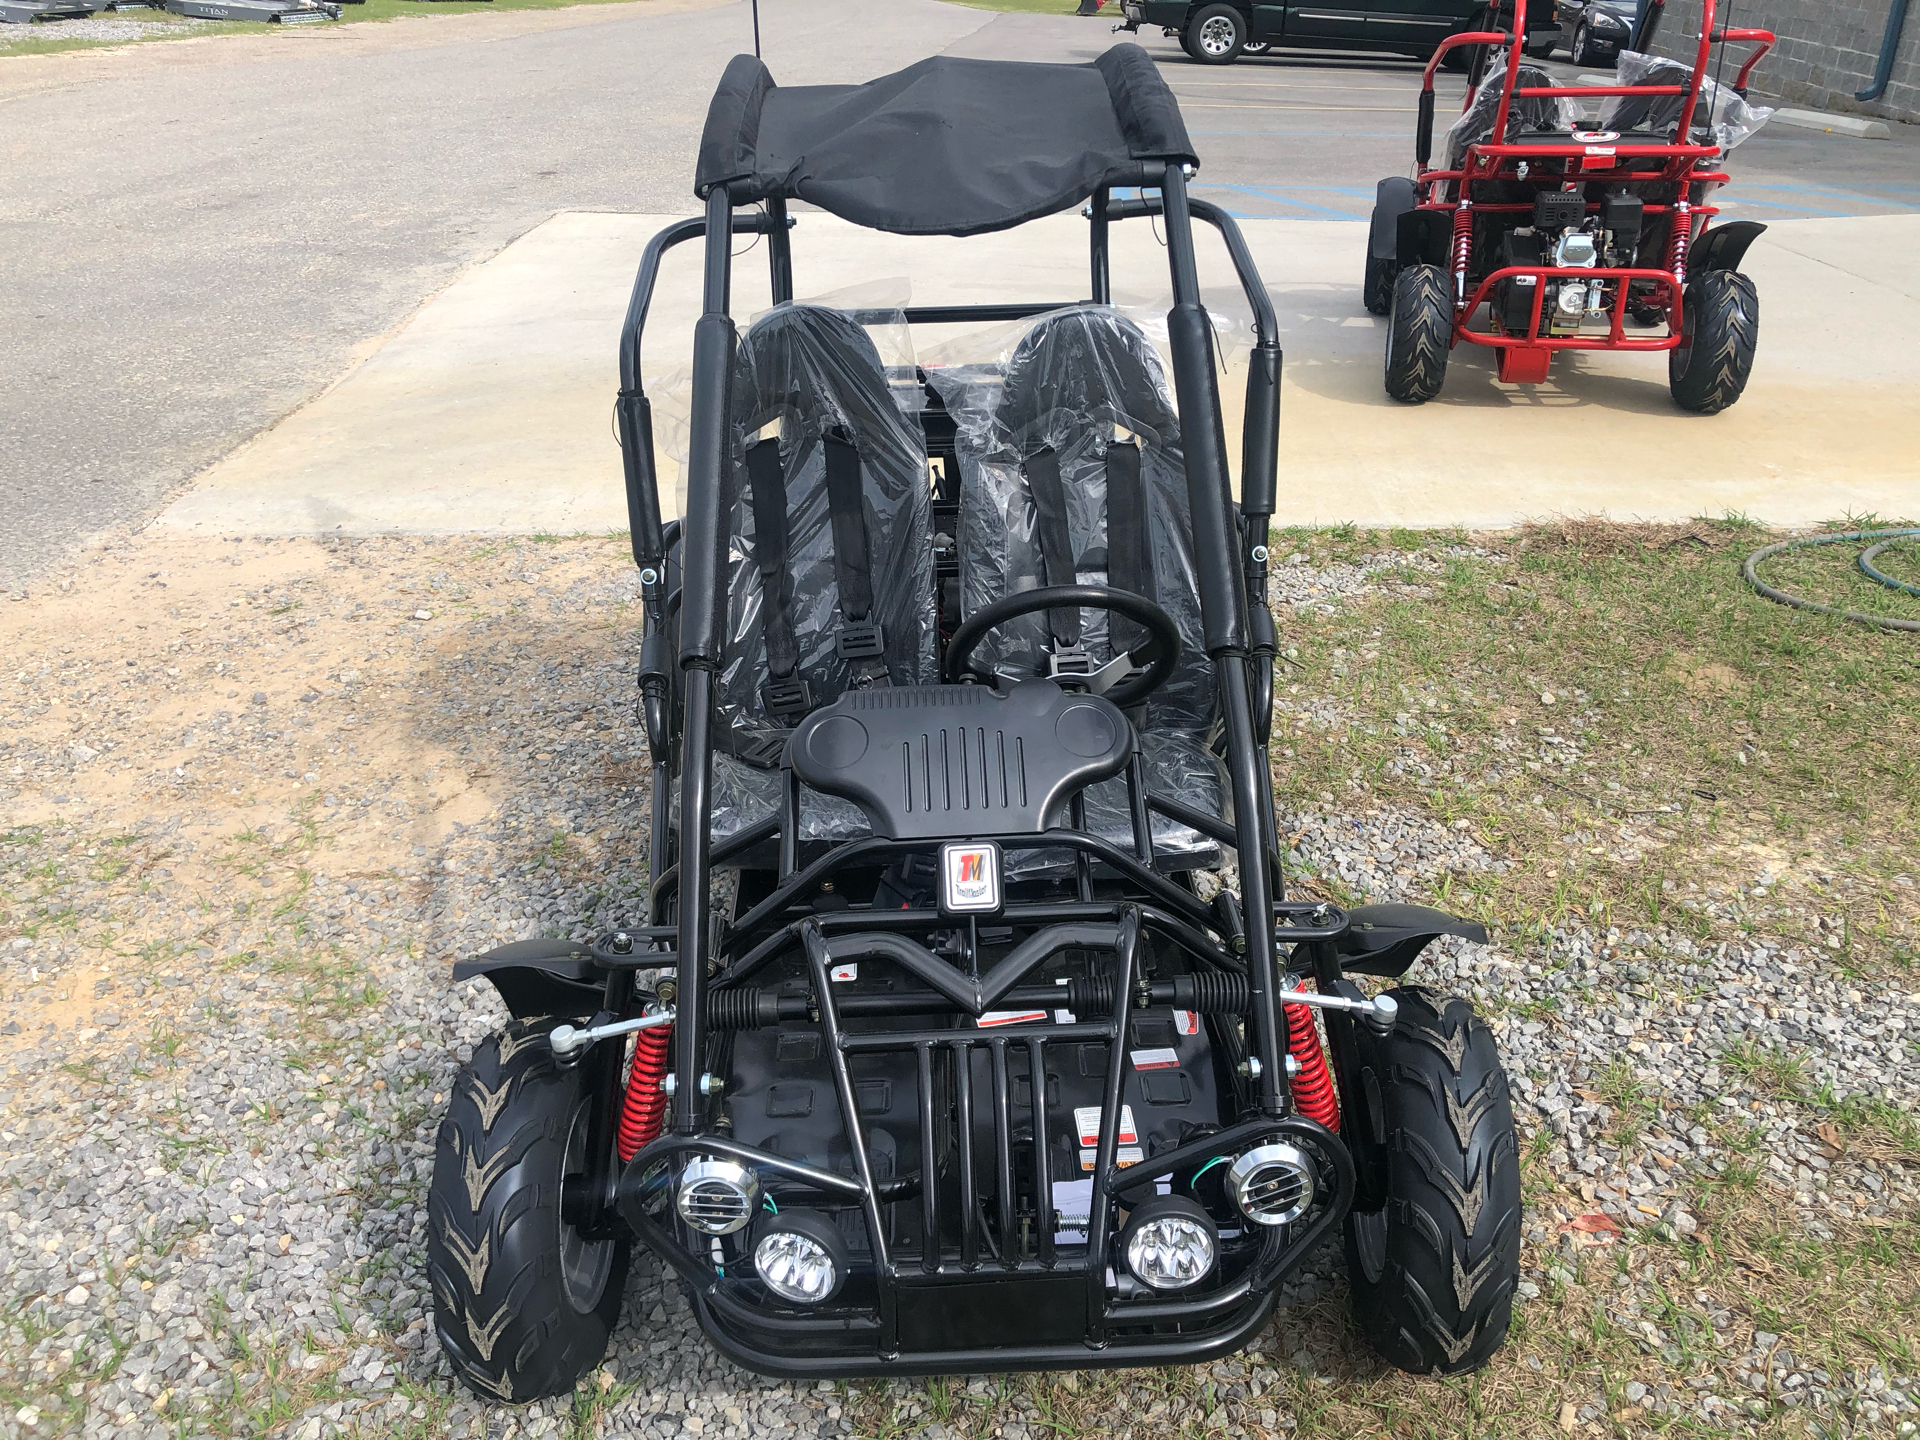 2020 Trail Master Off Road Mid XRX/R - Go Kart with Reverse in Saucier, Mississippi - Photo 2